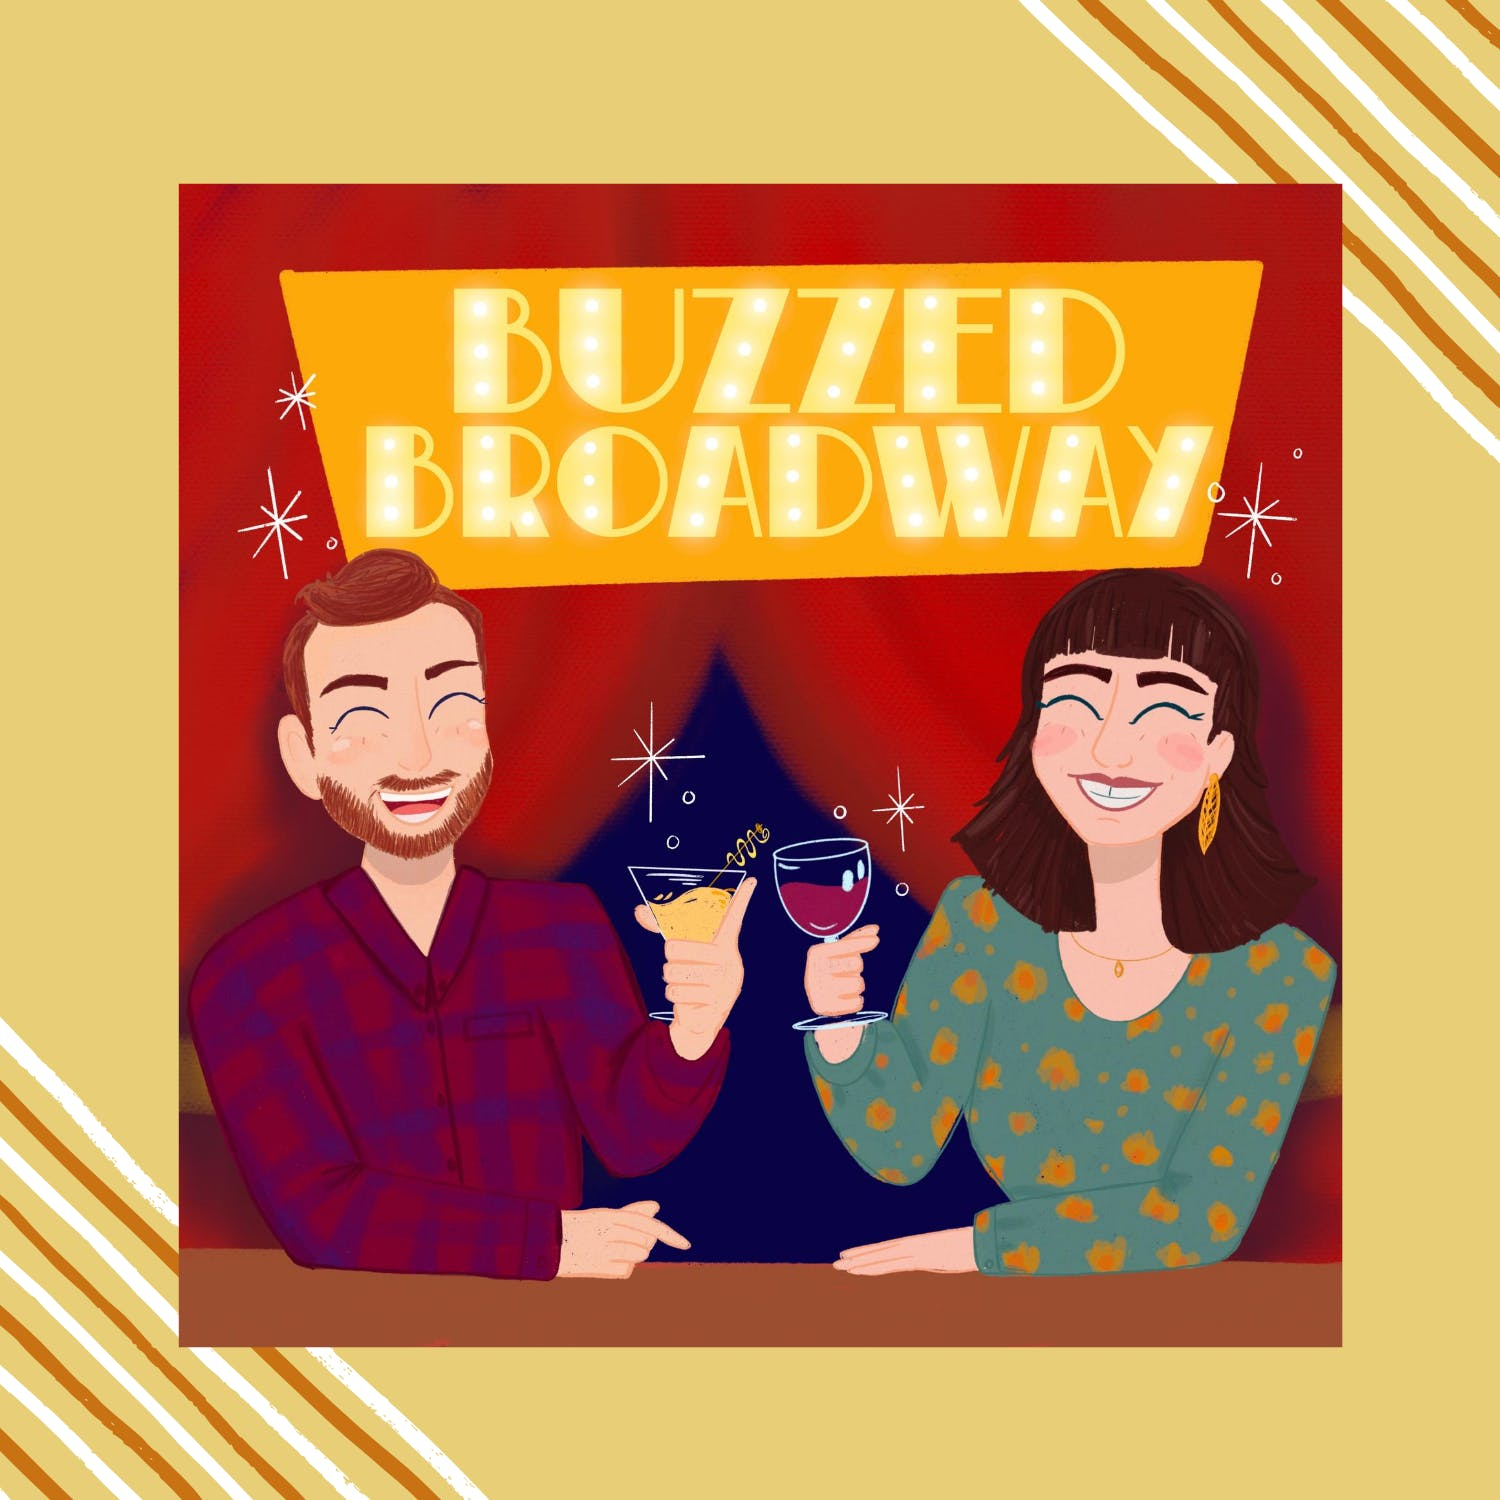 Episode 15- It's a crossover episode! Ft. Buzzed Broadway